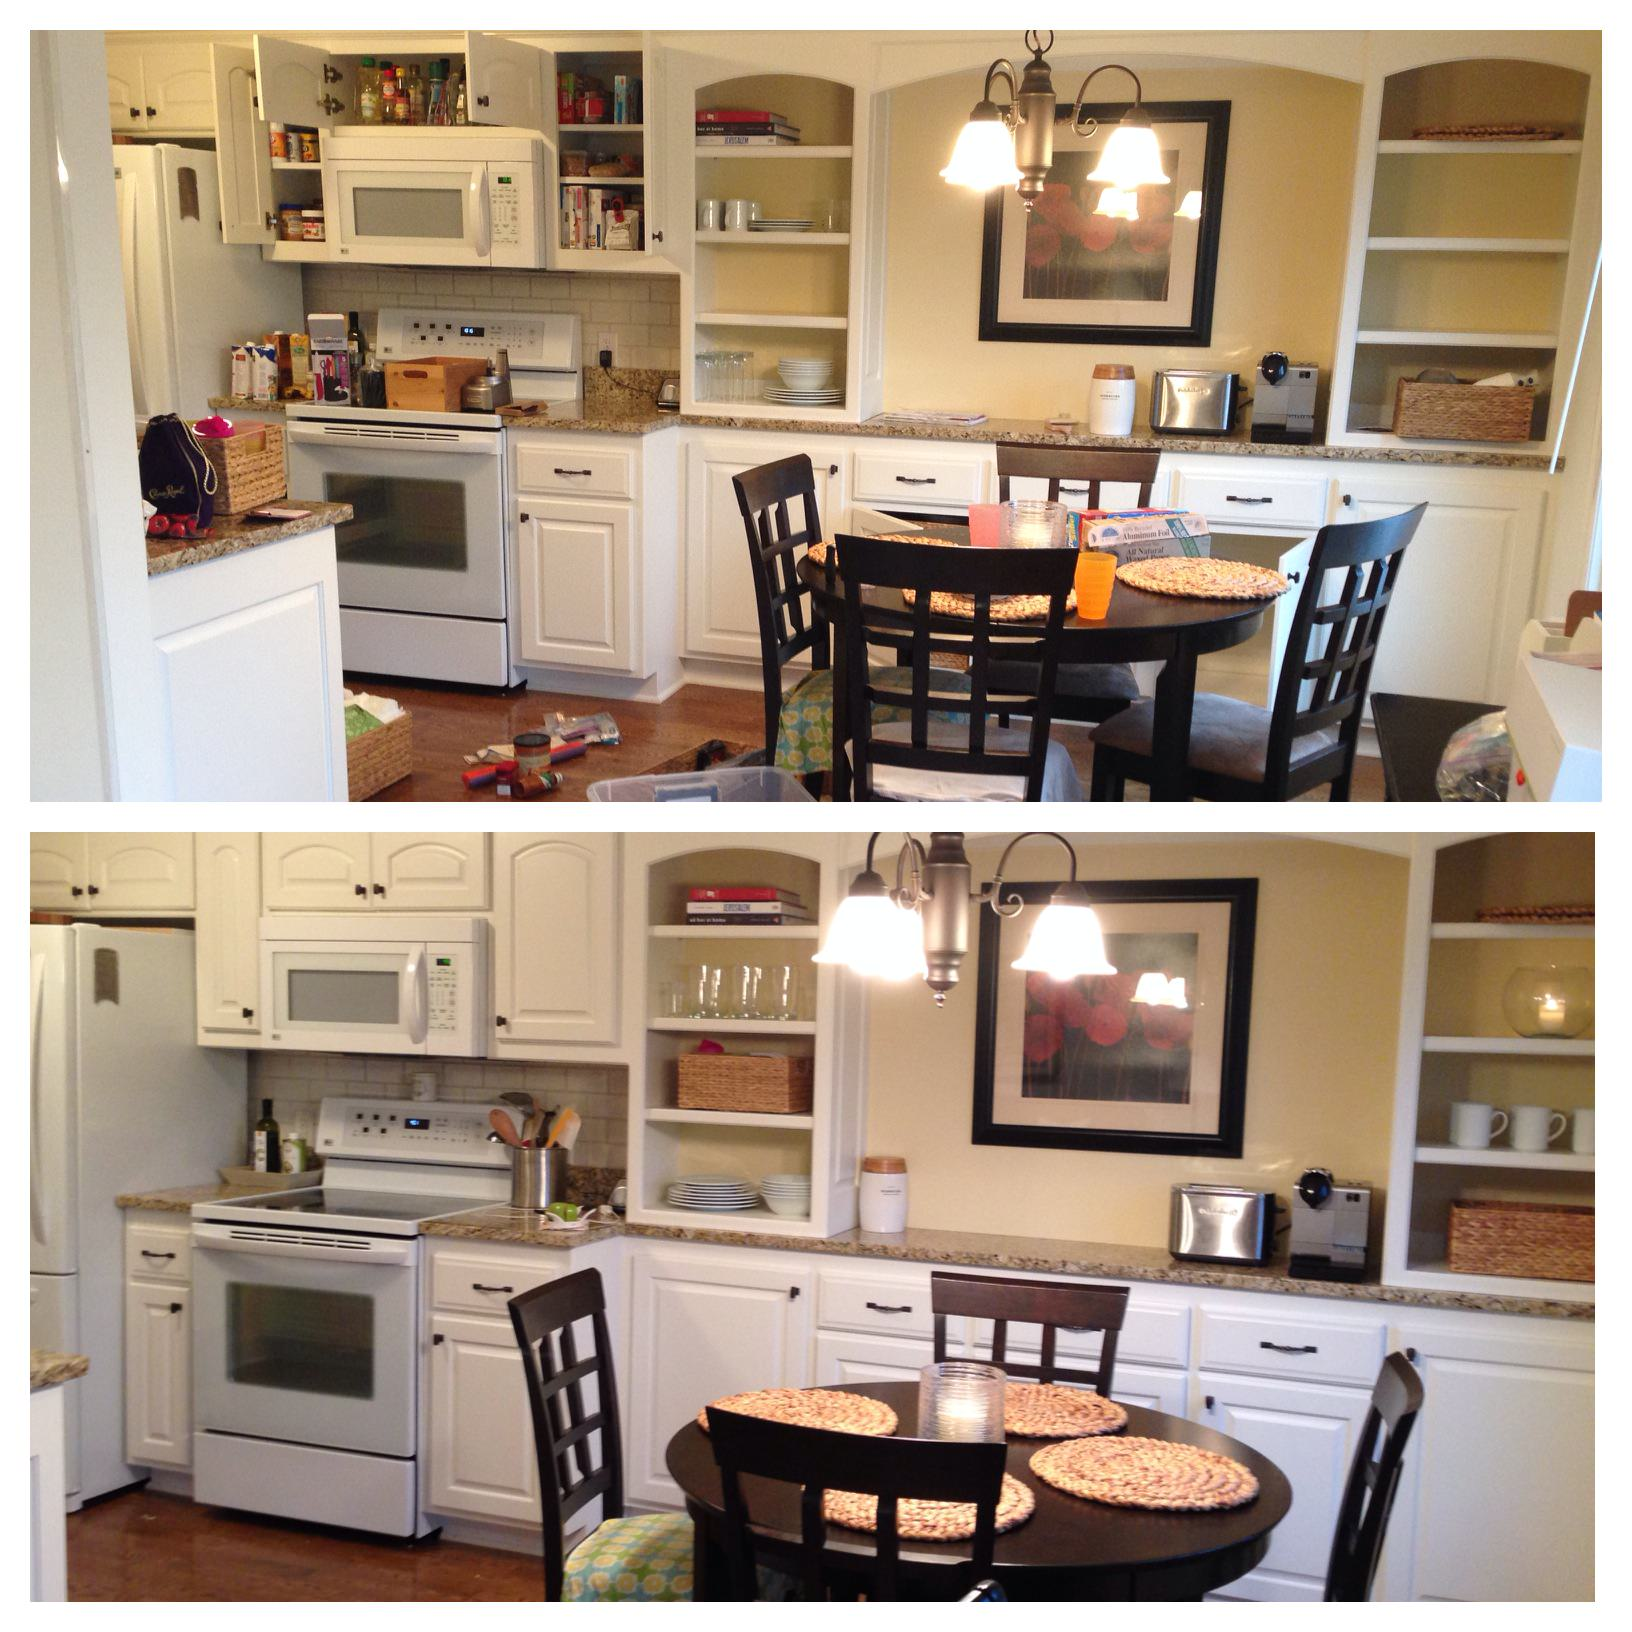 Twin Cities, St. Paul, Minneapolis, Lauren Warner, Lauren Murphy, Before and after, organizing, professional organizer, kitchen organization,